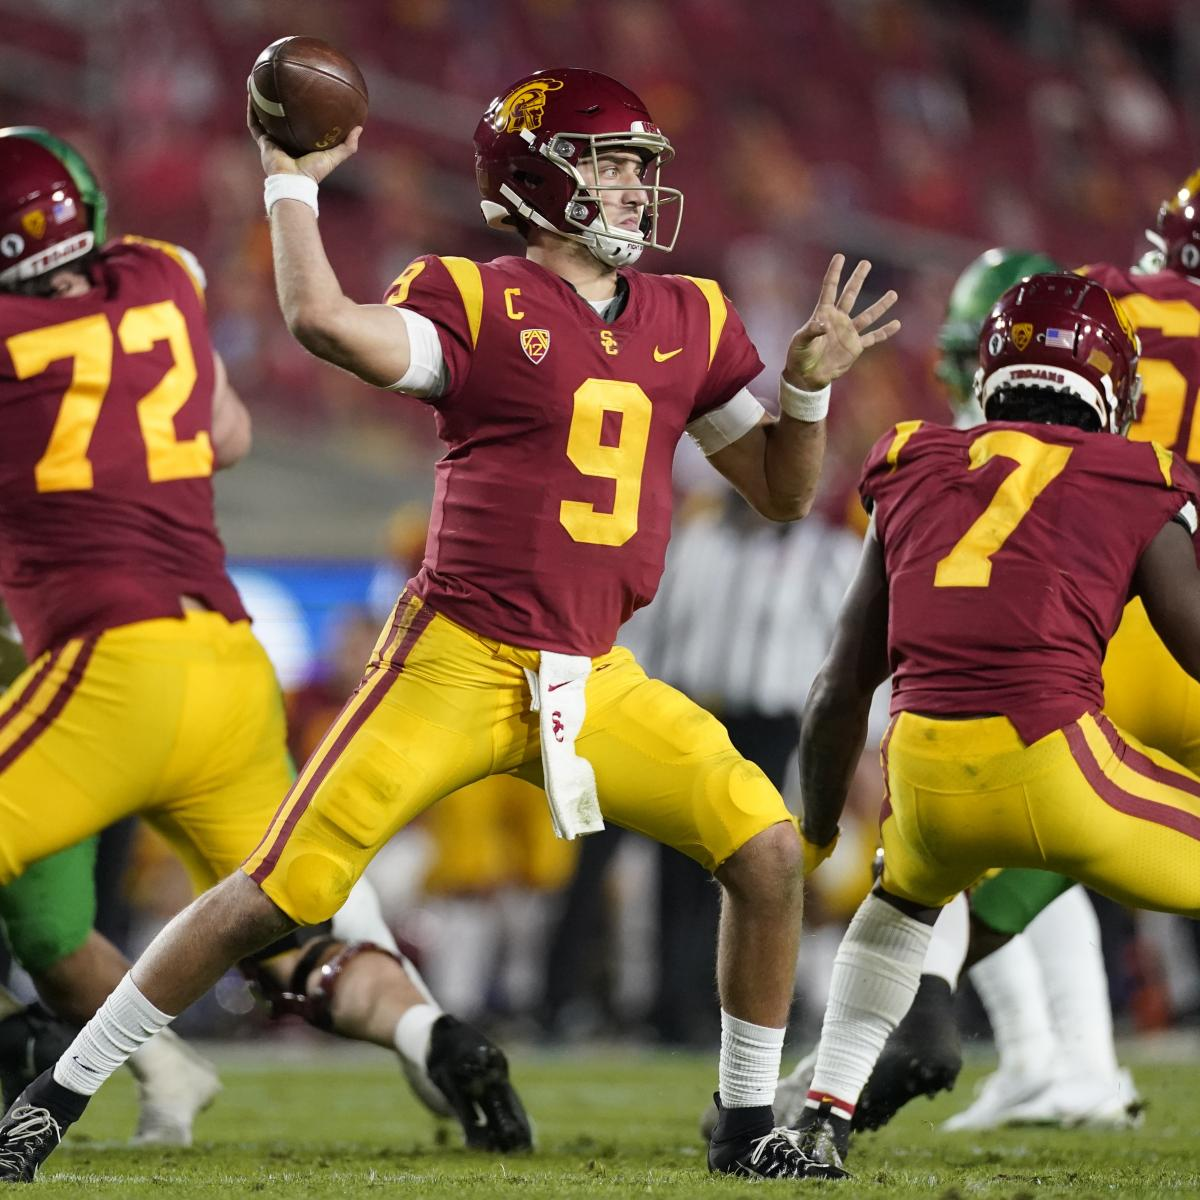 USC Spring Game 2021: Top Storylines and Prospects to Watch